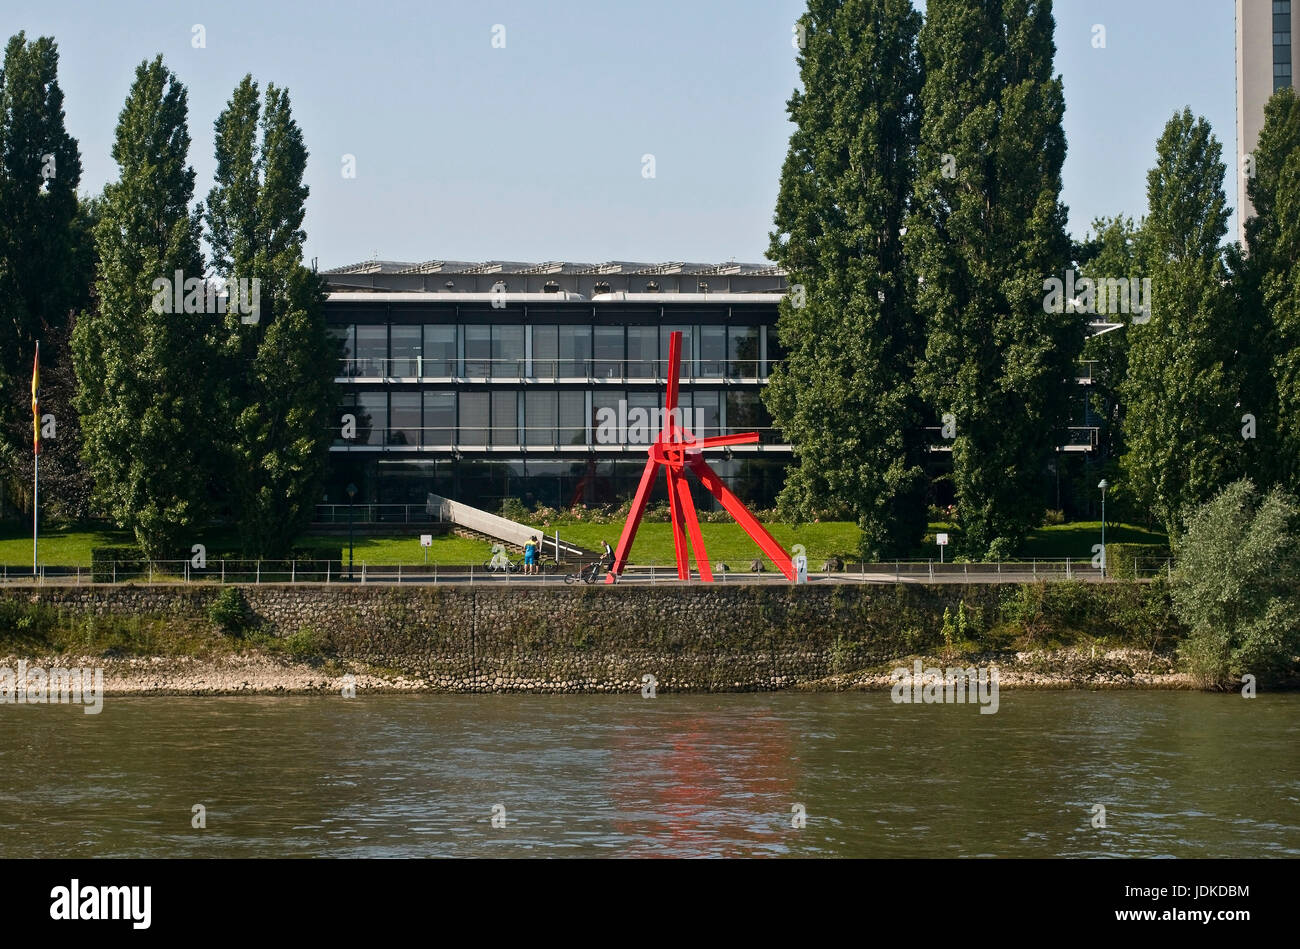 Europe, Germany, North Rhine-Westphalia, Bonn, Rhine front of the Bundestag building in Bonn ? ?? in front the building - Stock Image